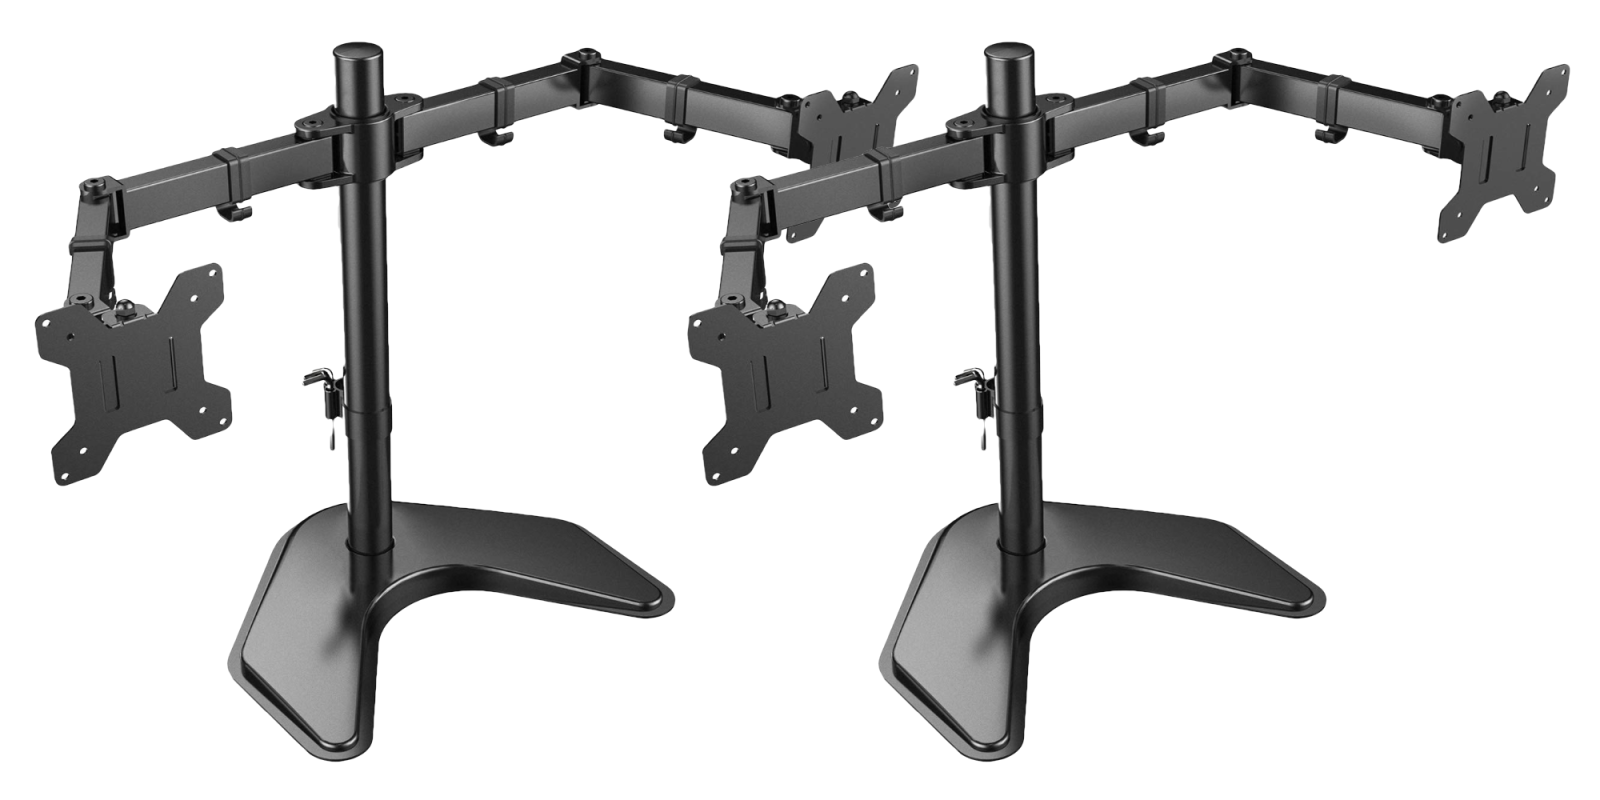 This dual monitor stand frees up desk space at 27% off, now on sale for $26